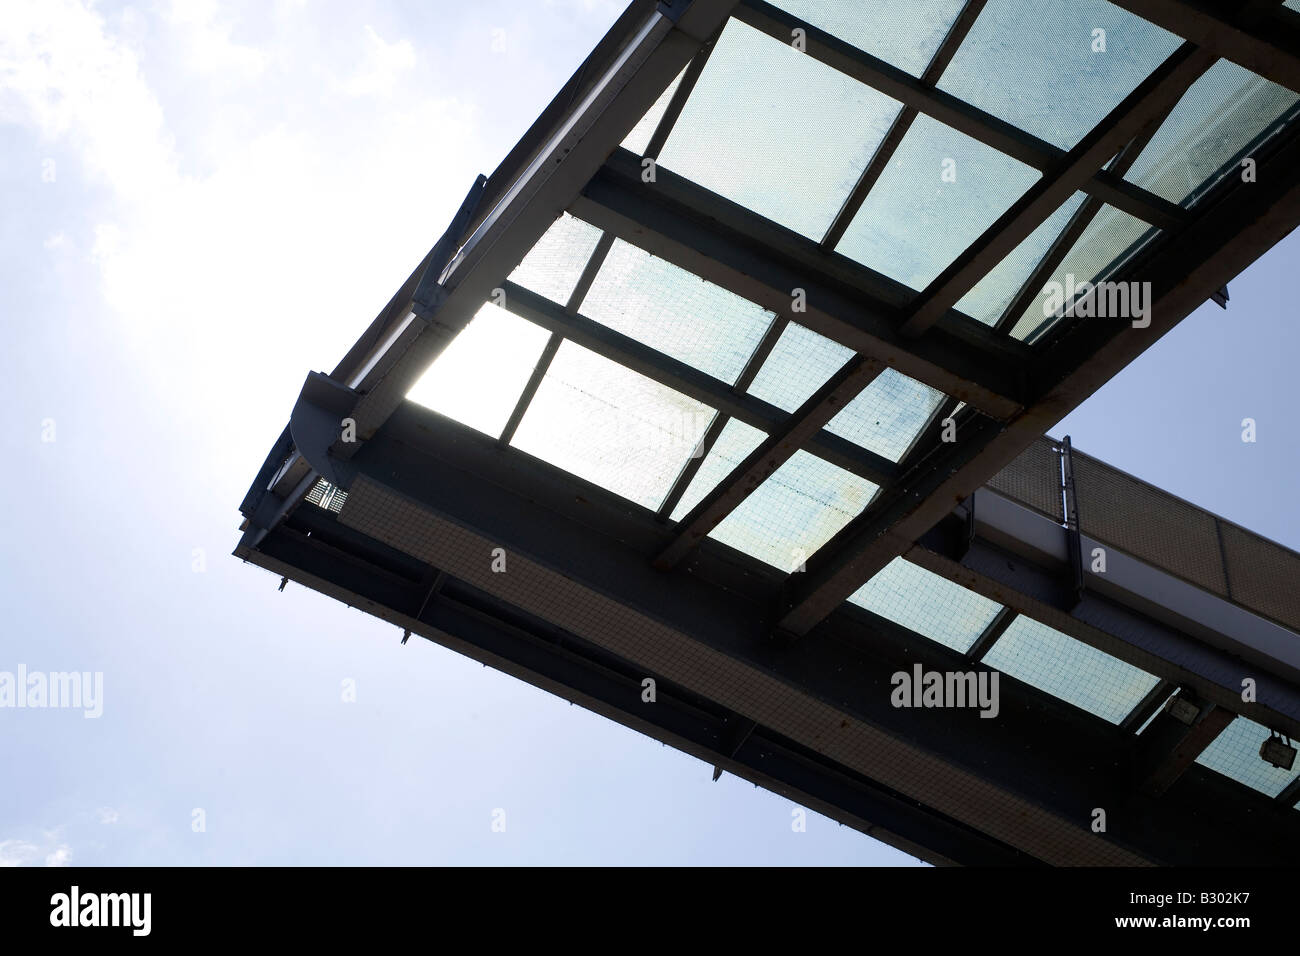 A detail from the glass roof of the National Glass Centre in Sunderland, England. The centre opened in 1998. - Stock Image